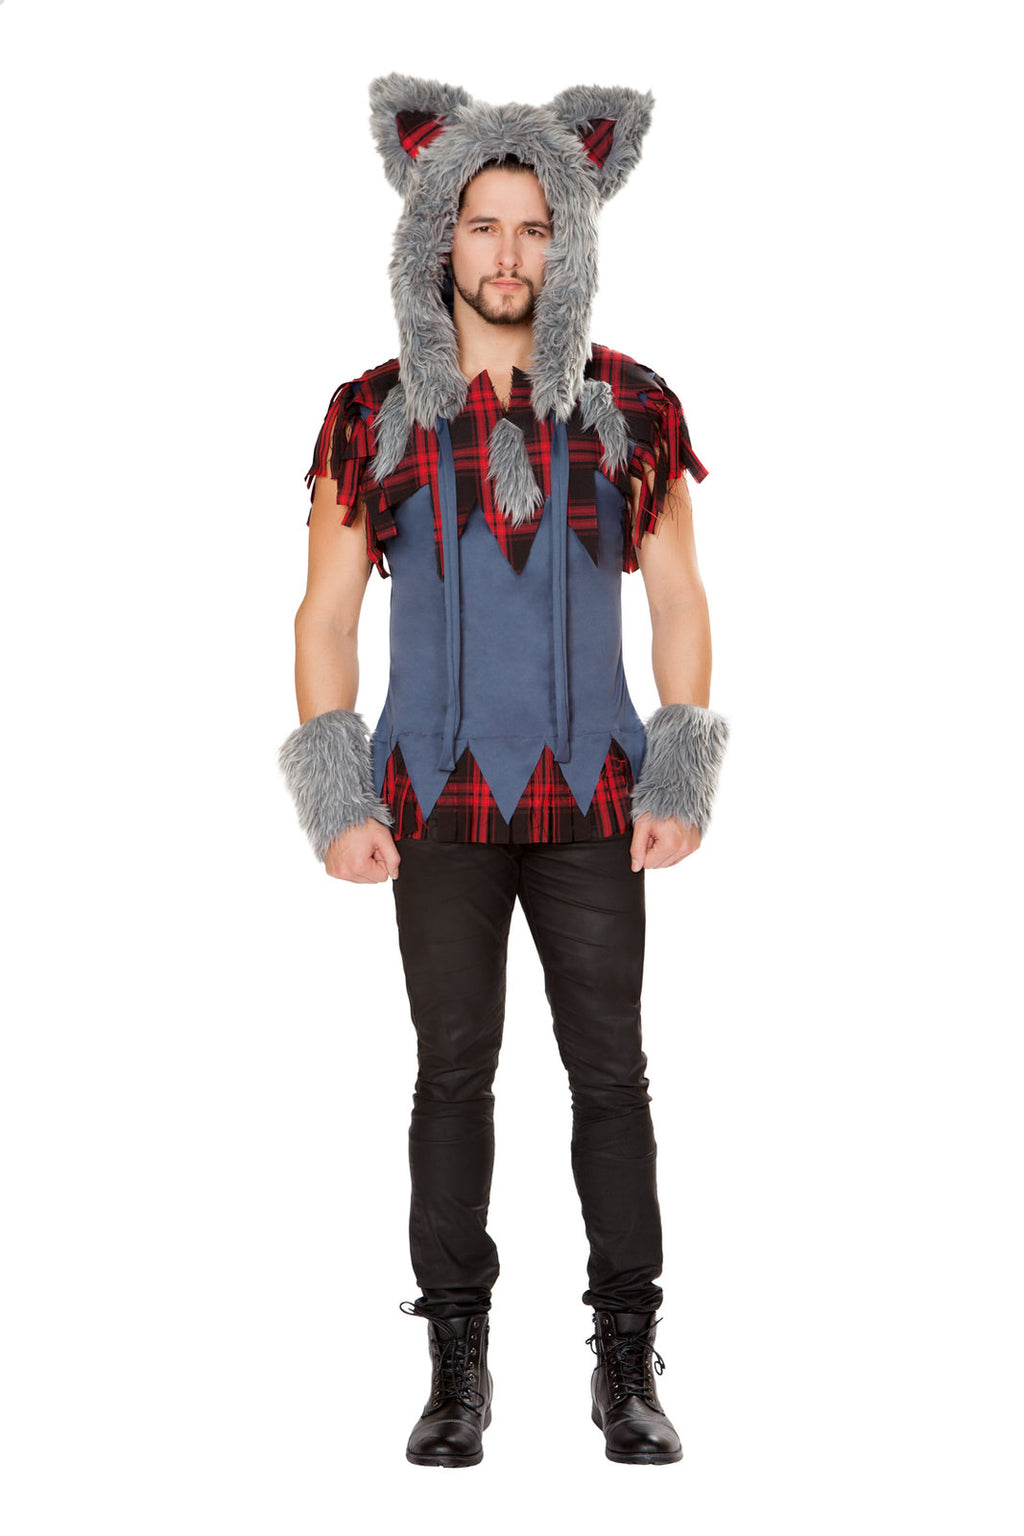 1-PC-Big-Bad-Wolf-Man-Red-Plaid-Frayed-Shirt-Party-Costume